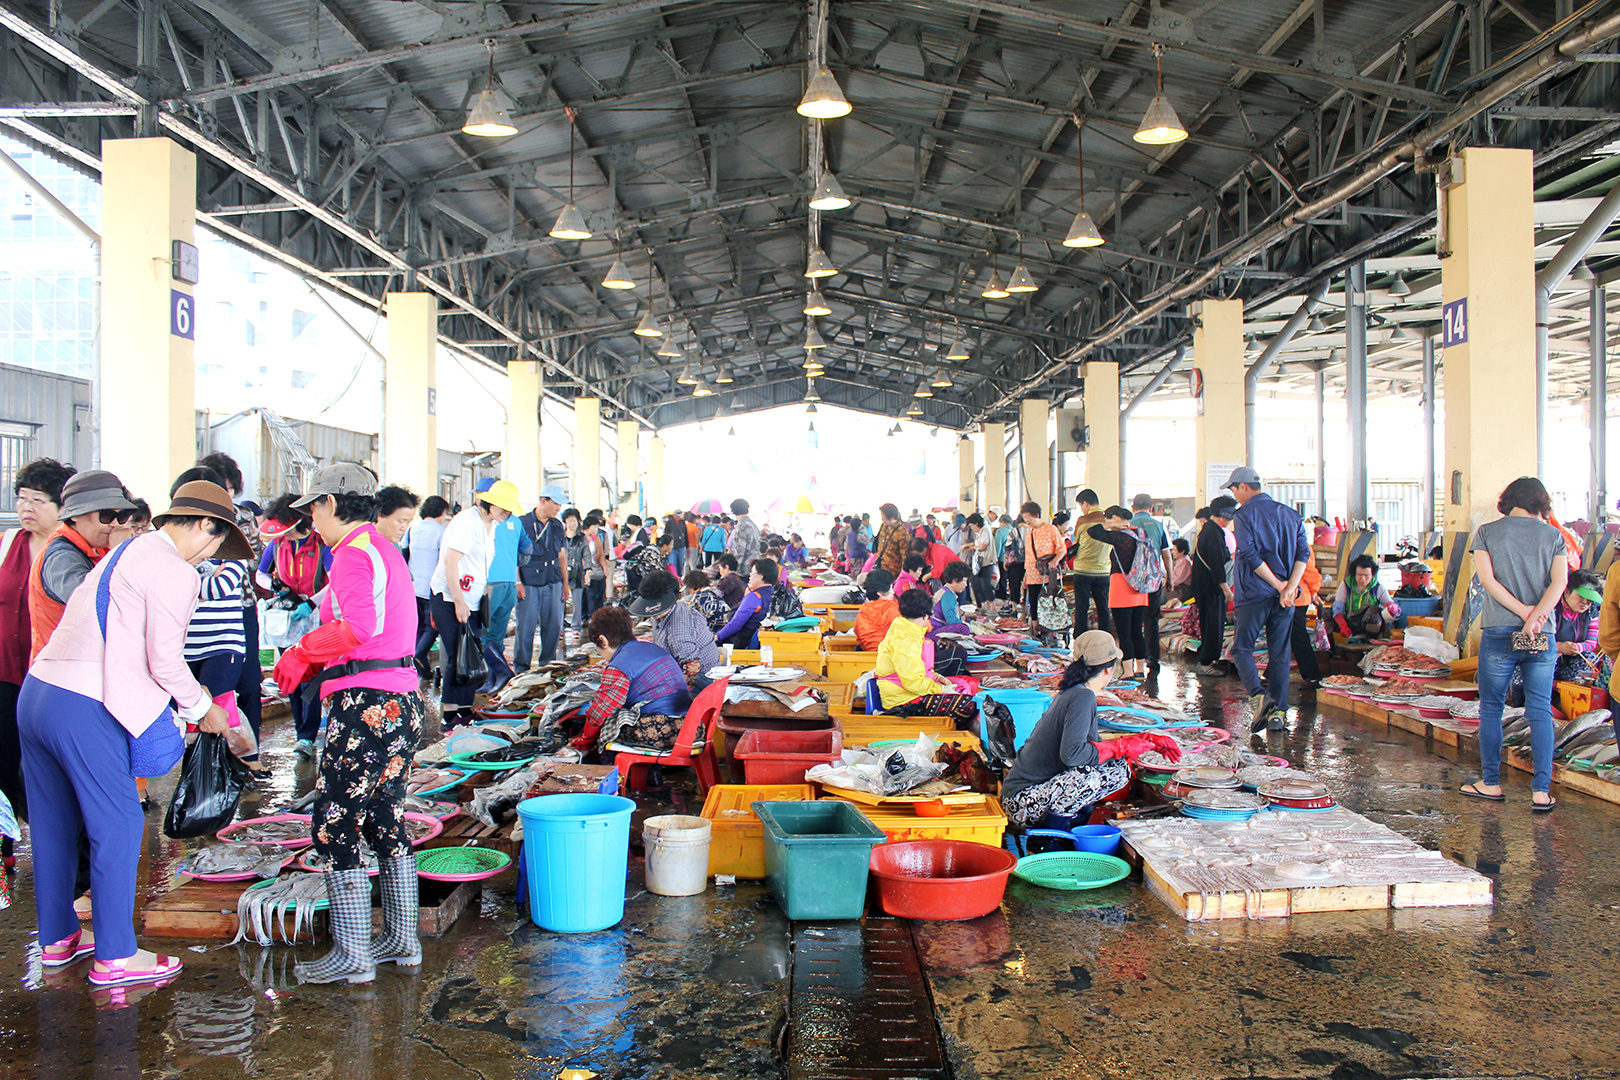 Row upon row of seafood vendors inside the Jagalchi Fish Market